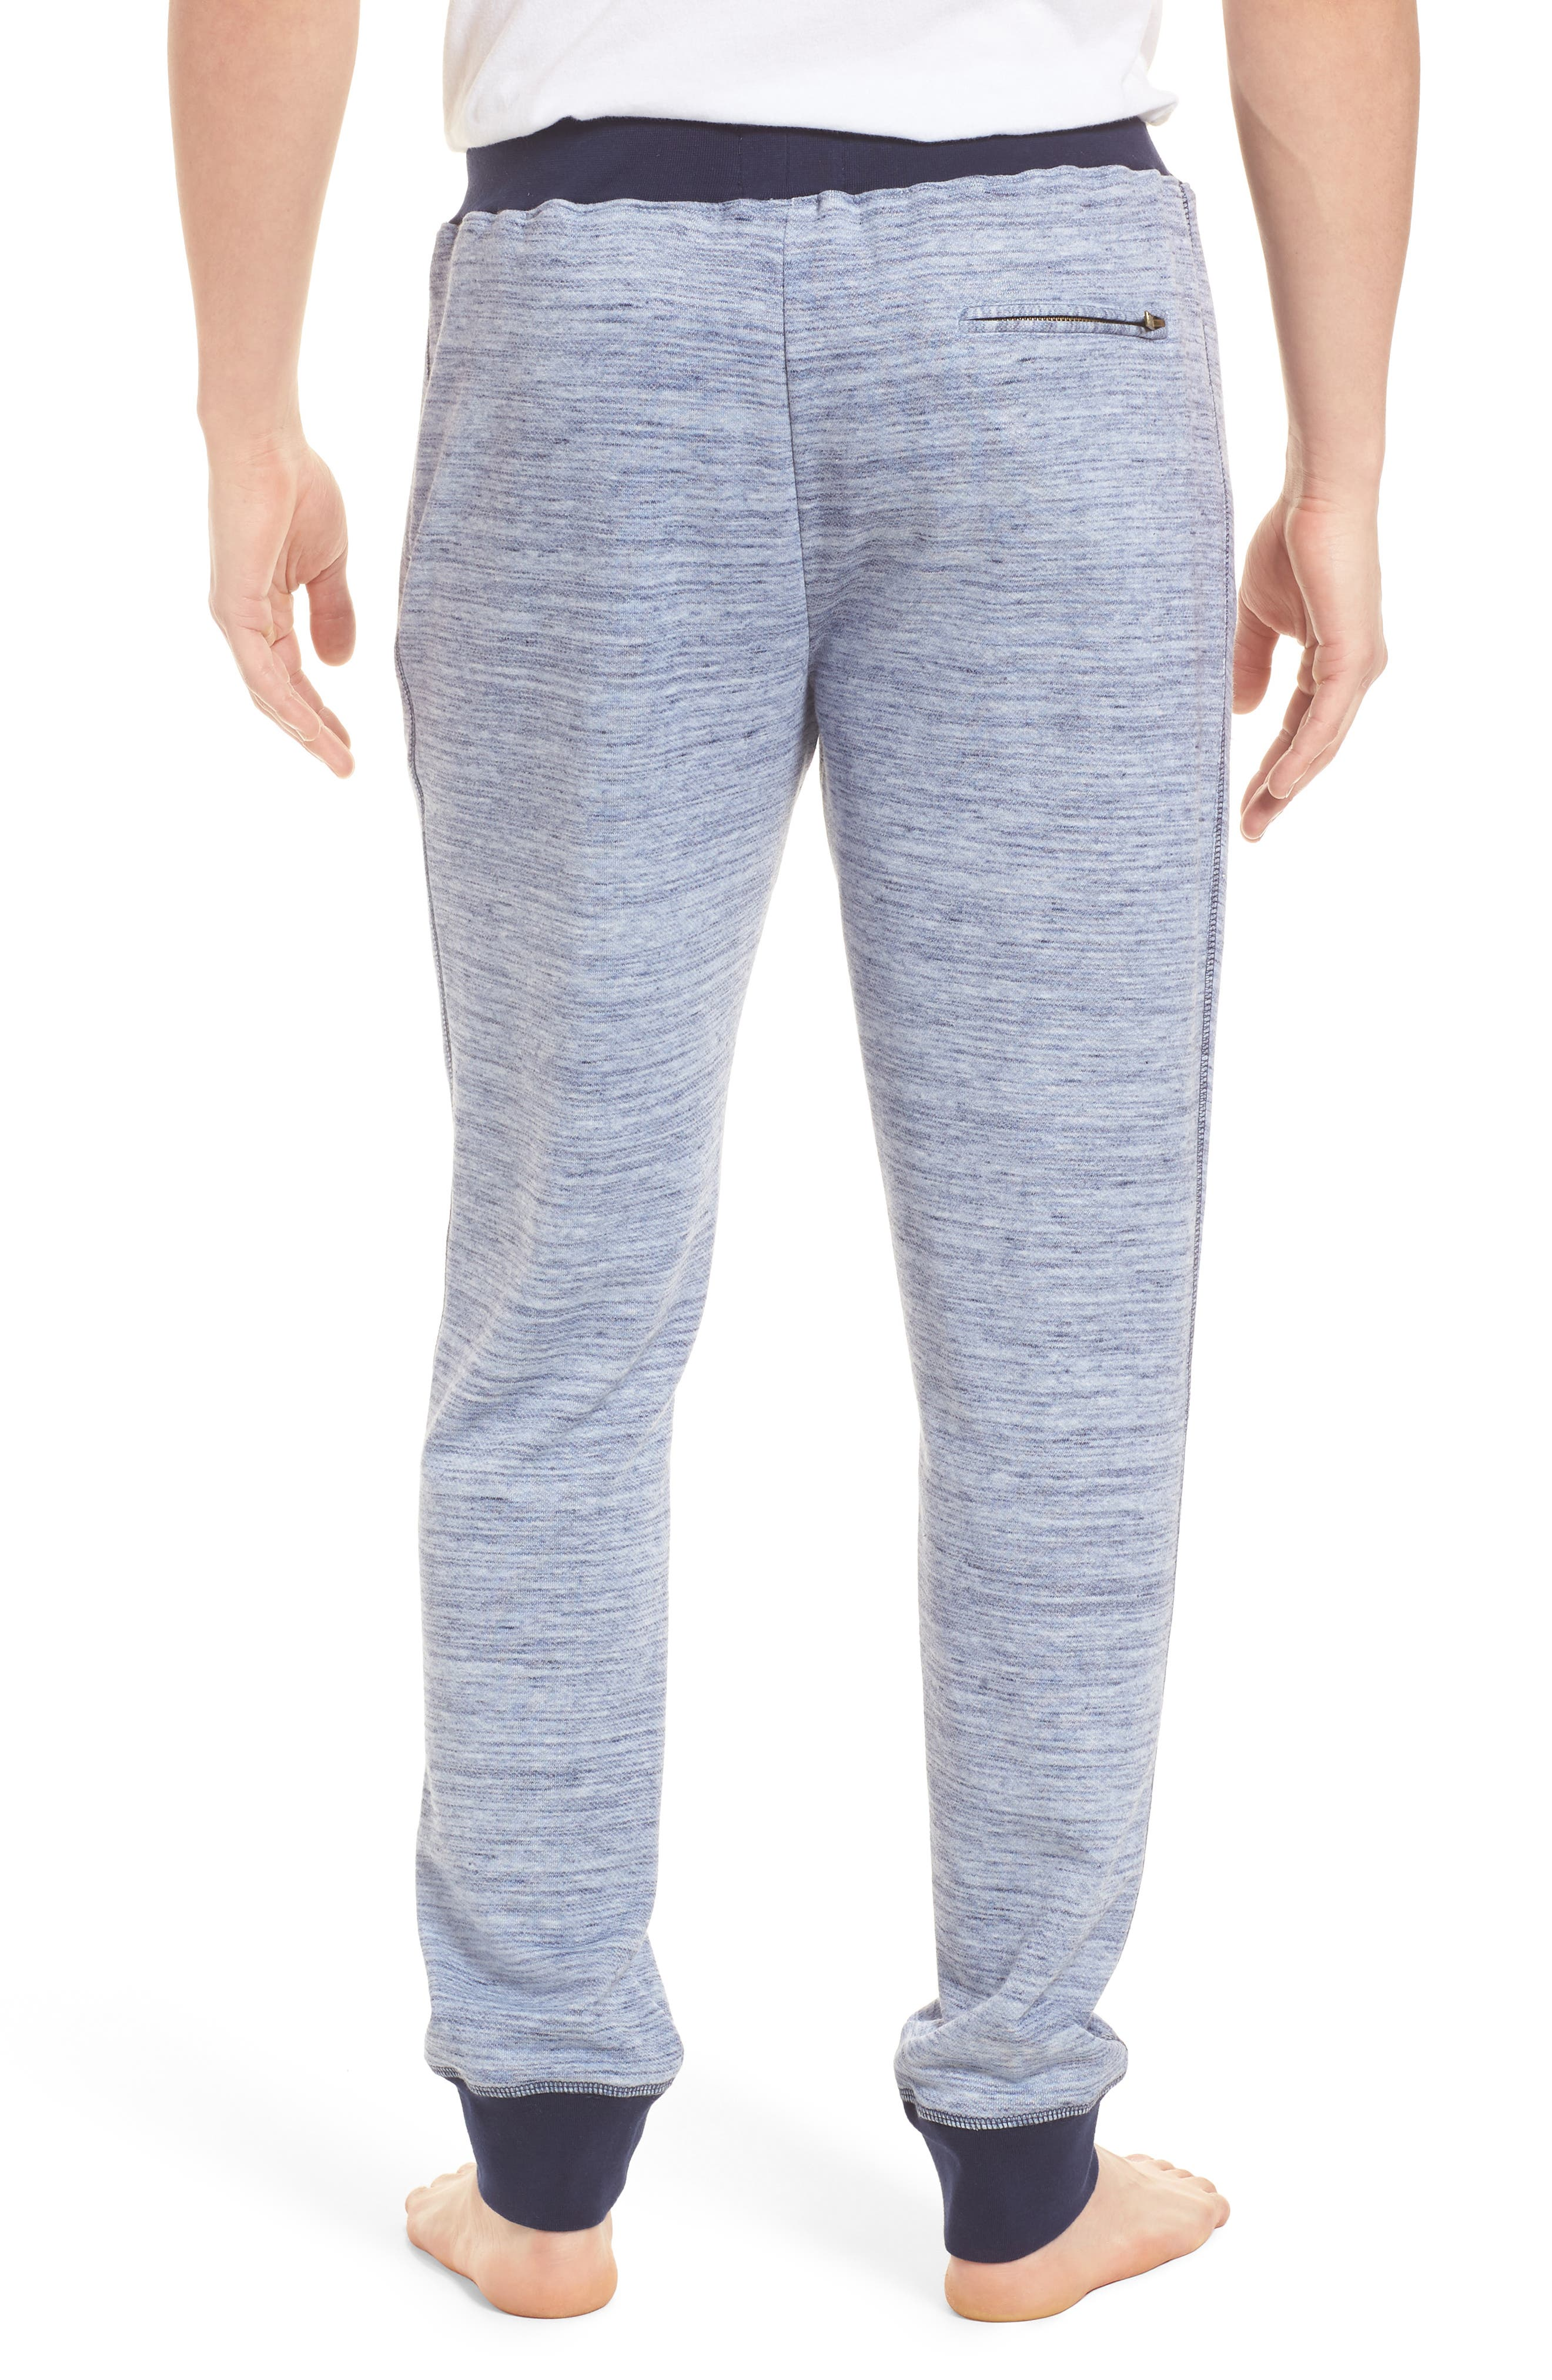 Swept In Waves Lounge Pants,                             Alternate thumbnail 2, color,                             Alfresco French Terry